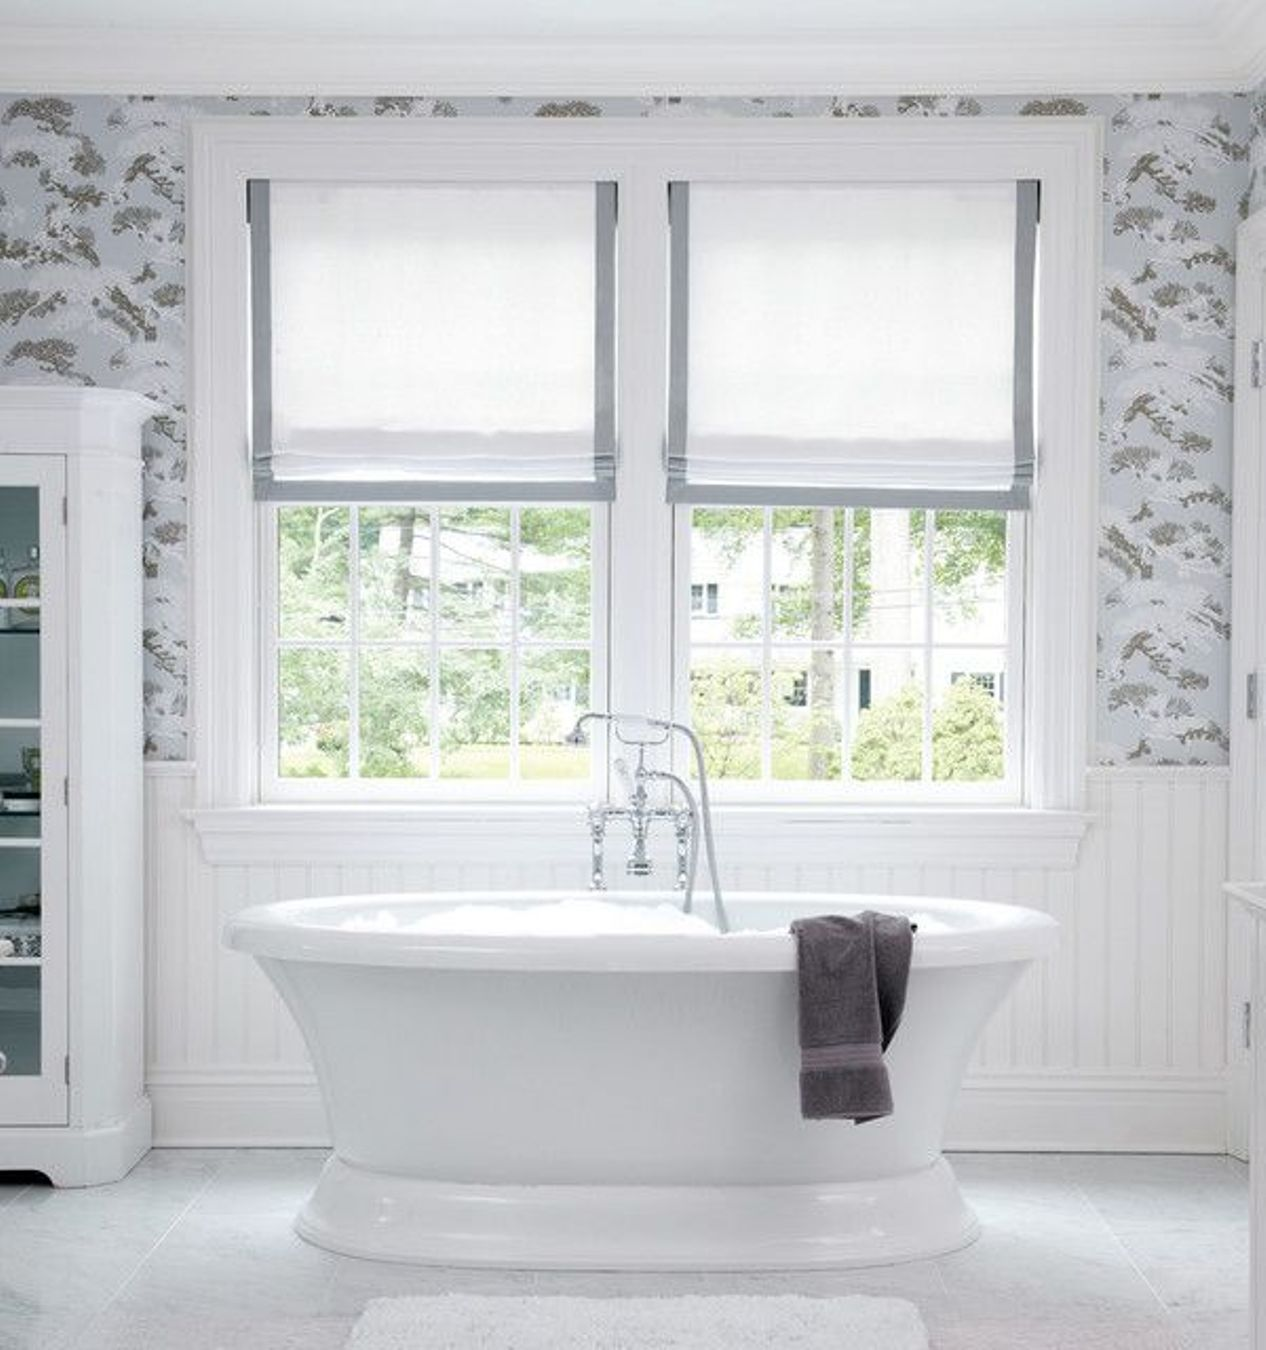 Small bathroom window curtains a creative mom for Blinds bathroom window